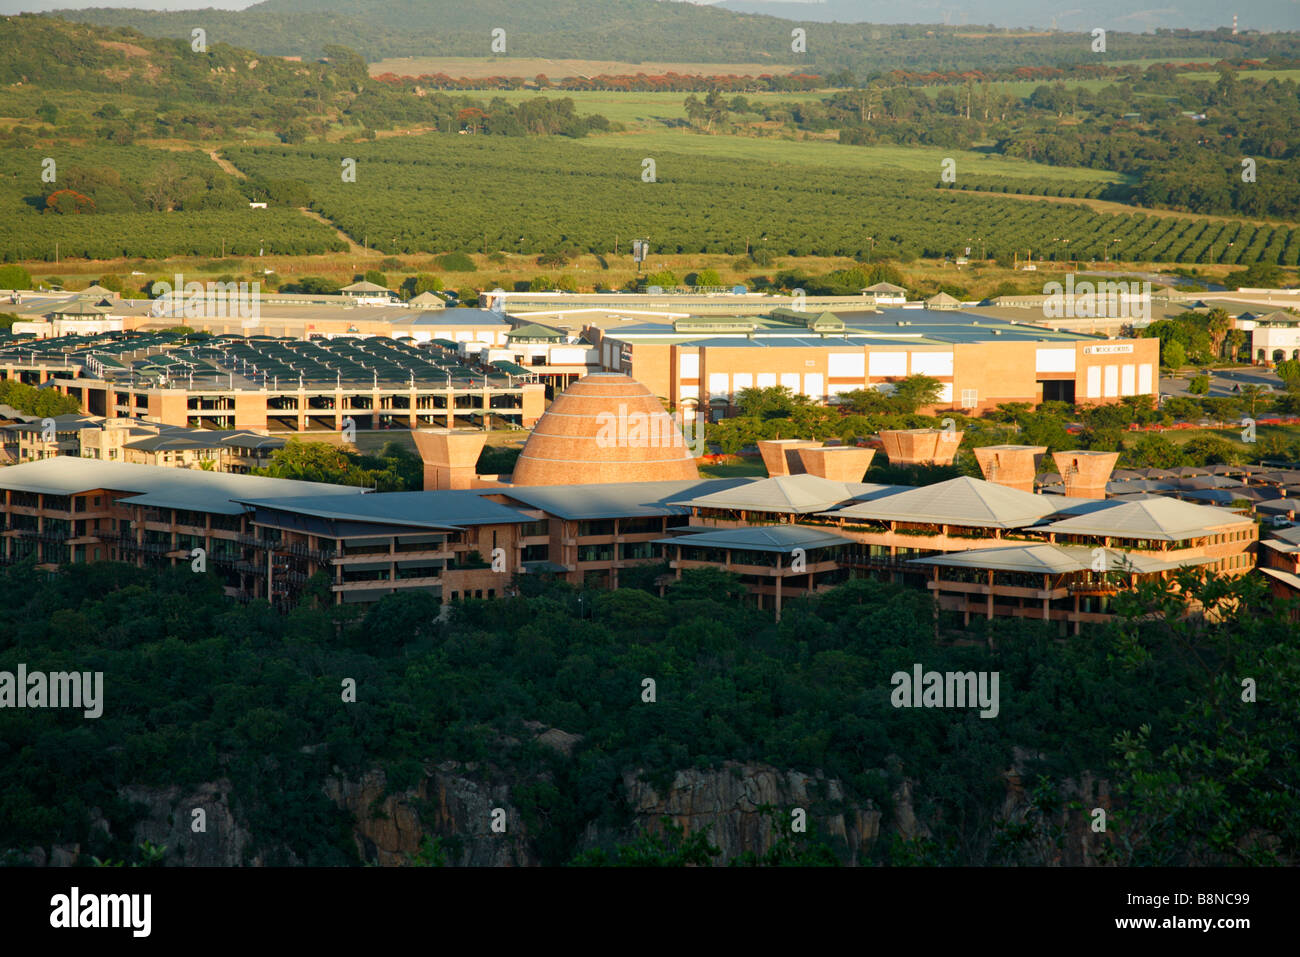 The Mpumalanga government buildings set it the scenic Nelspruit countryside Stock Photo